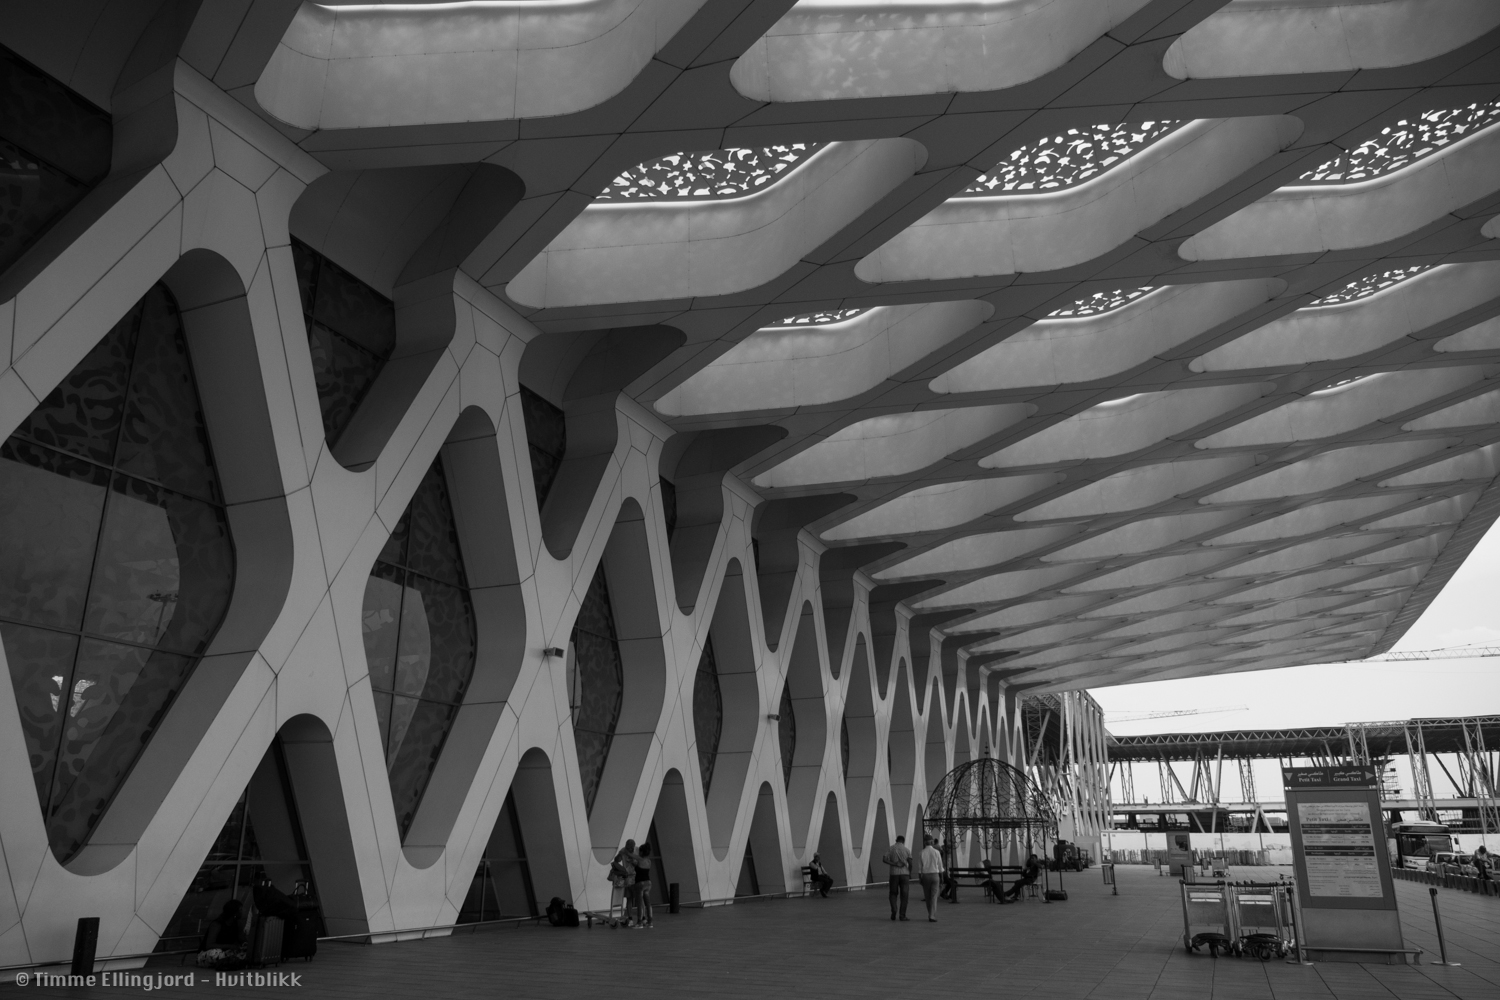 Marrakech airport, pretty cool design - old fashion and new mix